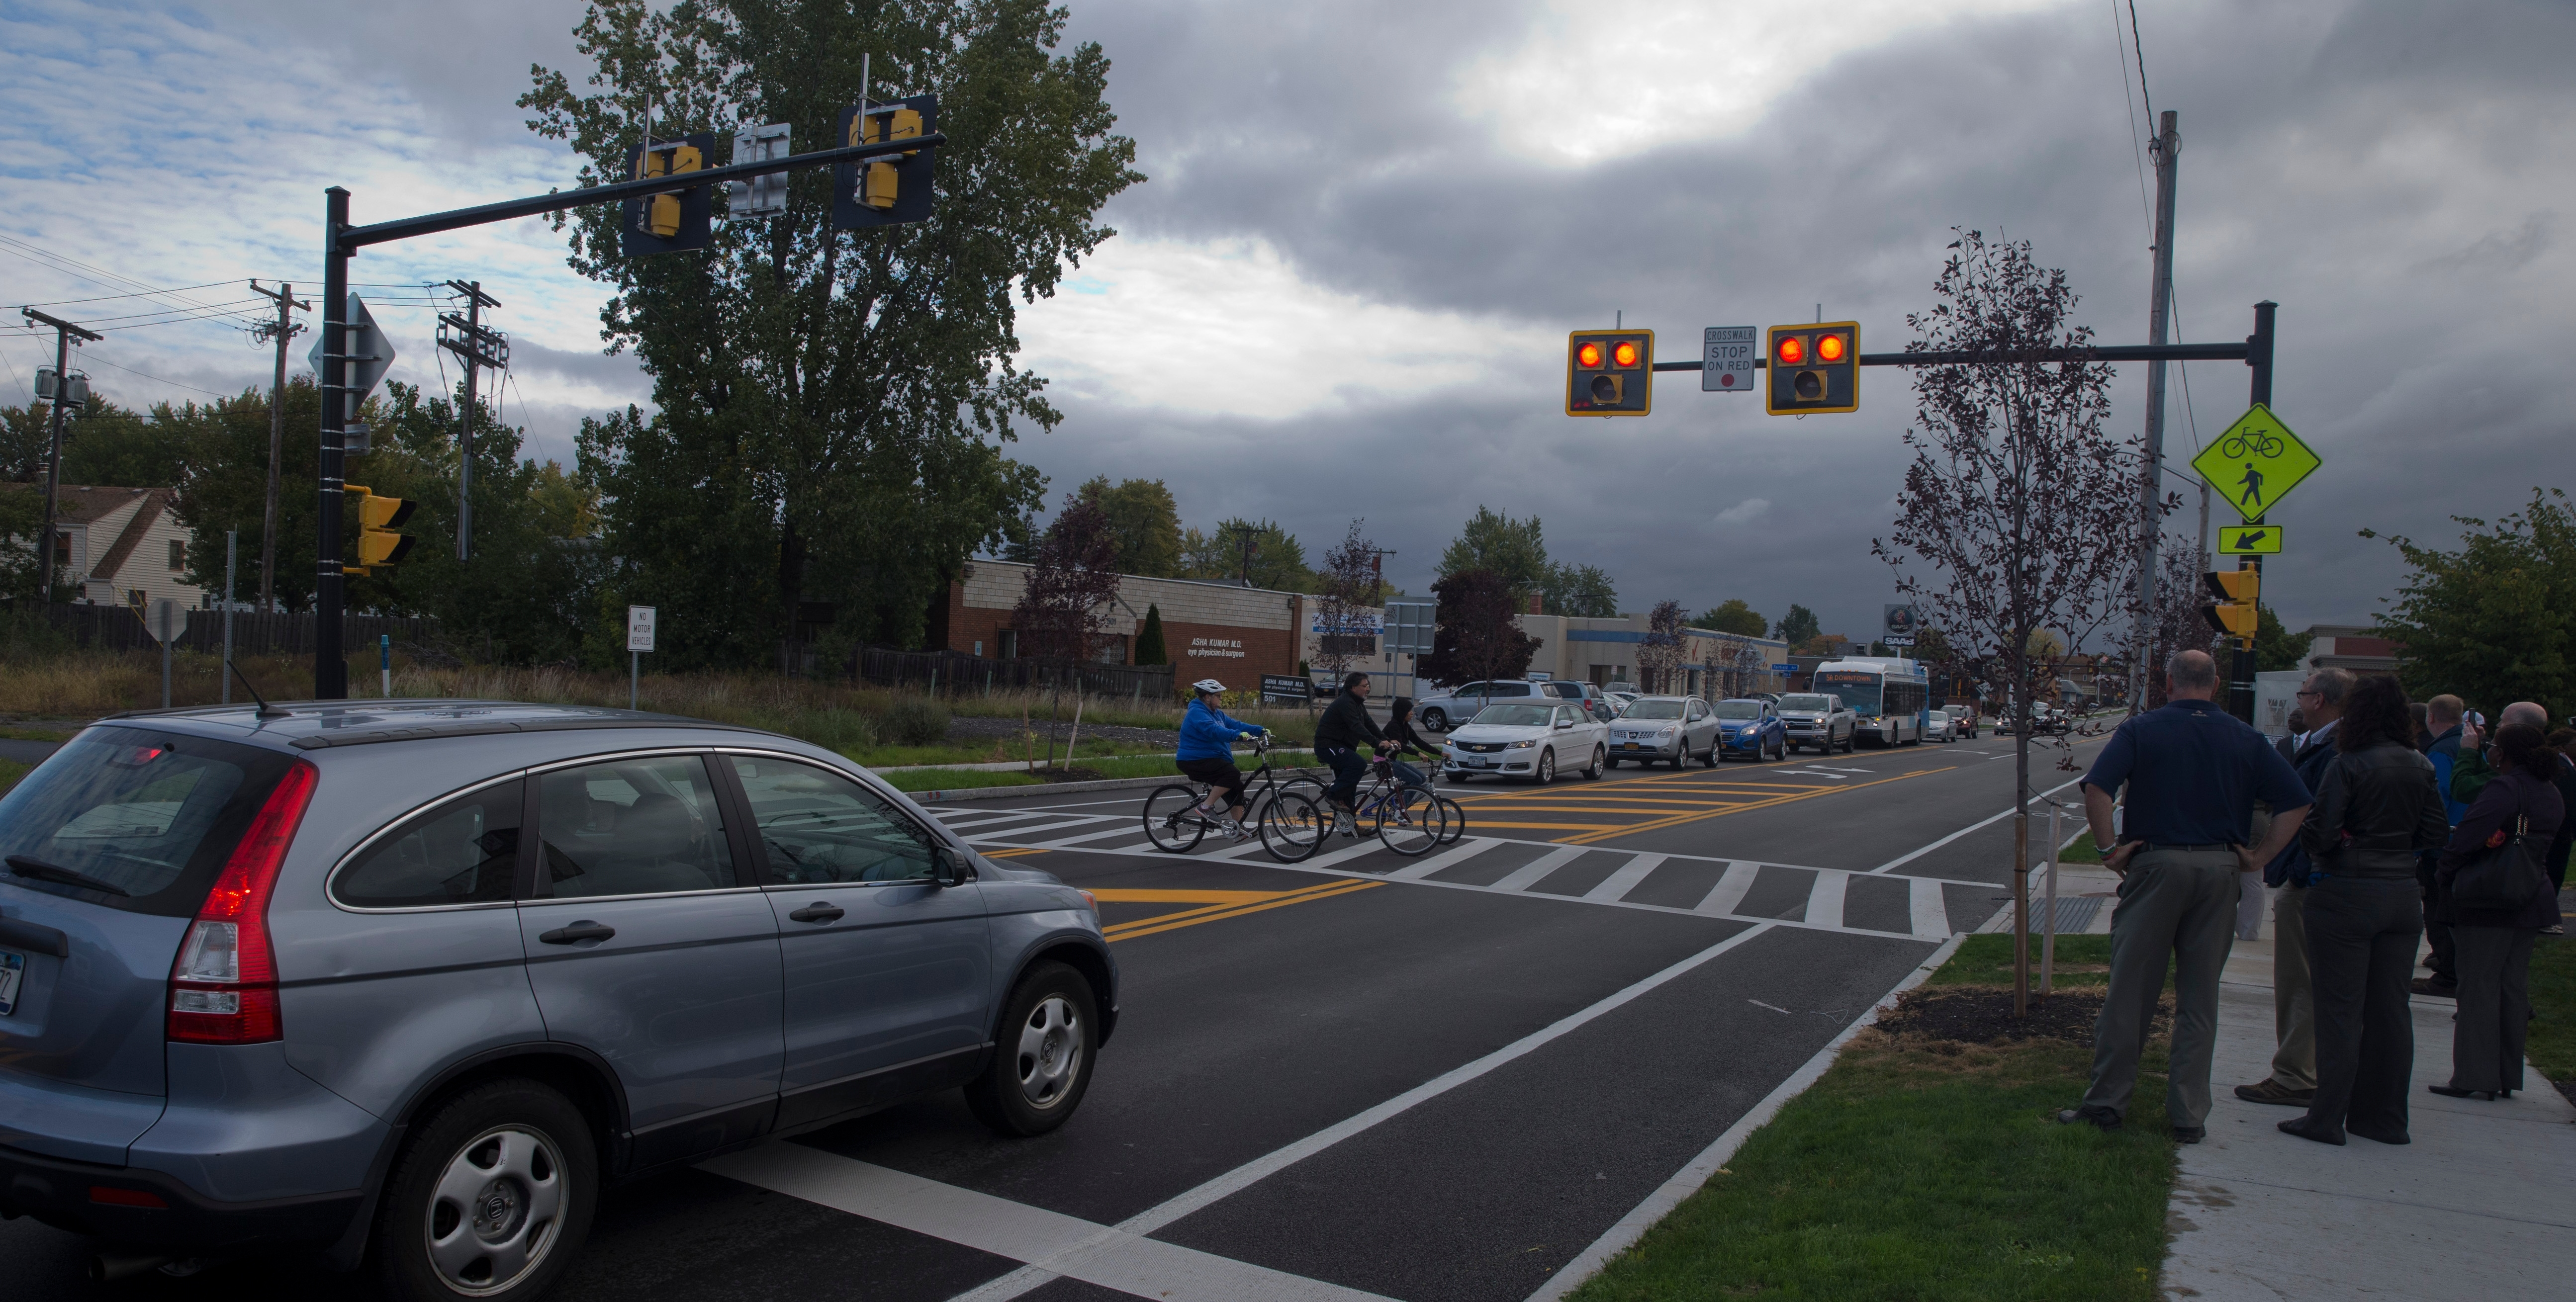 Buffalo City and Town of Tonawanda and County officials look on as bicyclist use newest  HAWK (High intensity Activated crossWalK) crosswalk located  at  Kenmore Avenue, at intersection of North Buffalo Rails to Trails crossing, in Buffalo, N.Y. on Thursday Oct. 13, 2016.  (John Hickey/Buffalo News)